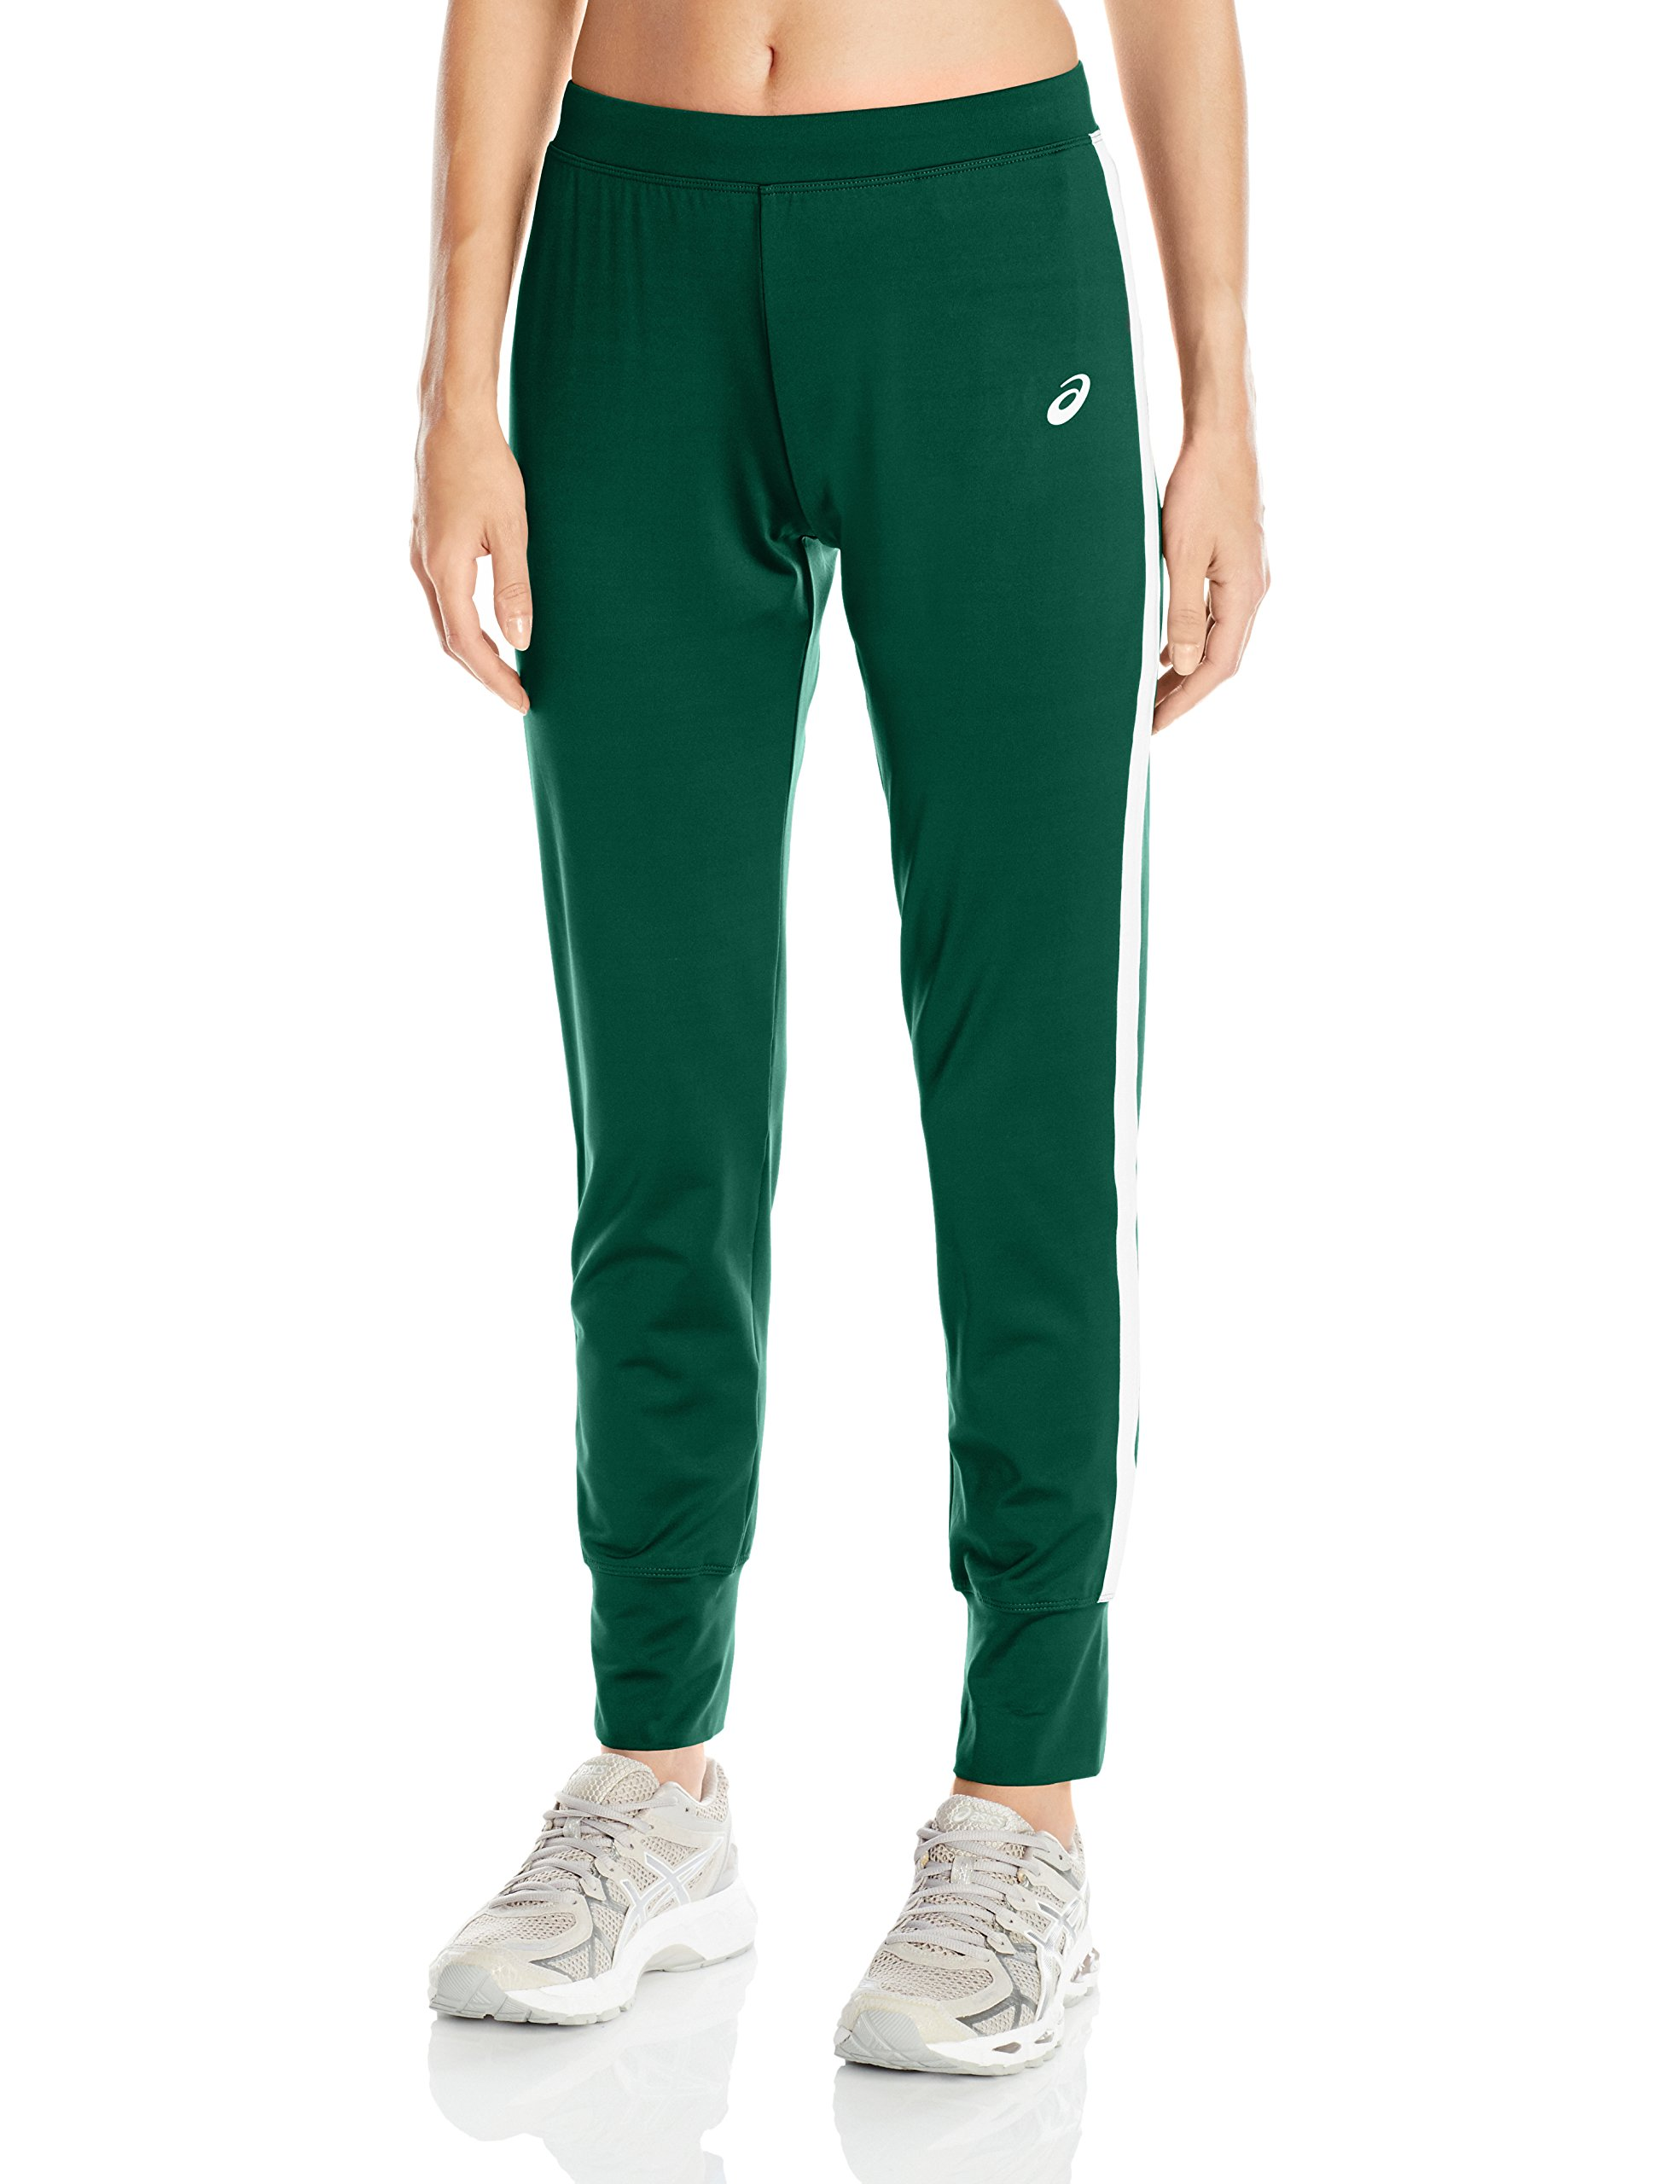 ASICS Women's Lani Performance Pant, Forest/White, X-Large by ASICS